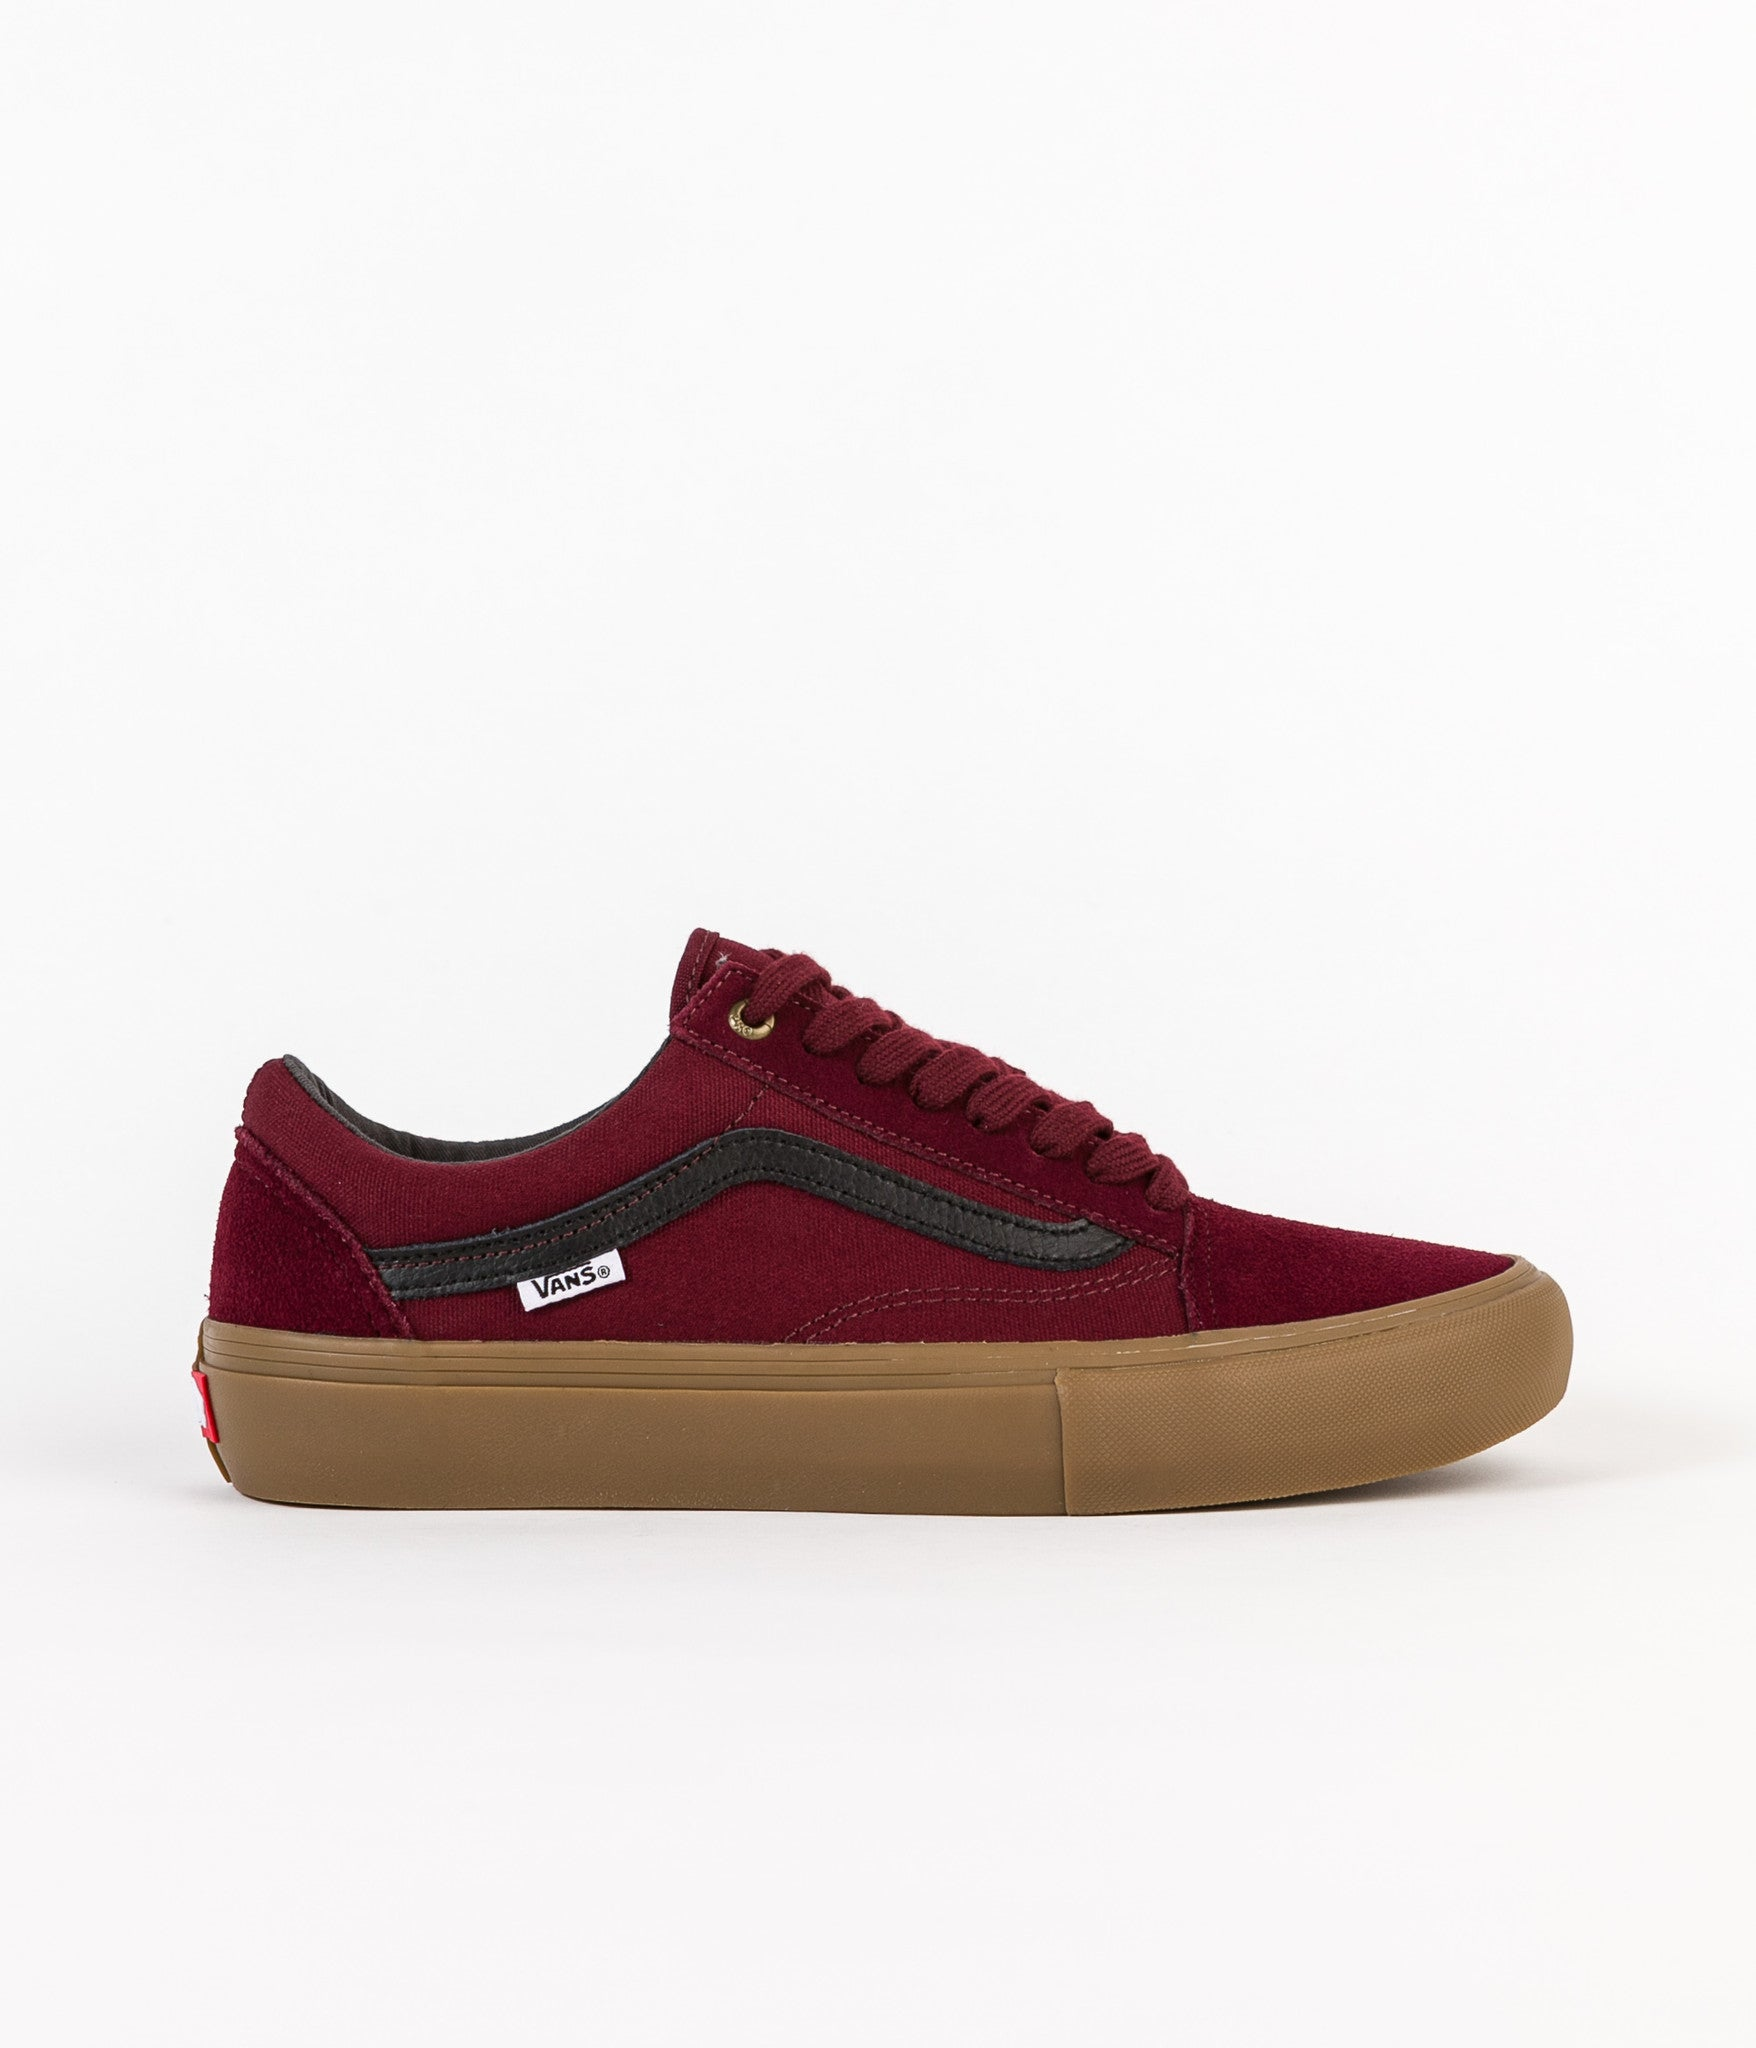 Vans Old Skool Pro Shoes - Port   Black   Gum  3a7340abf